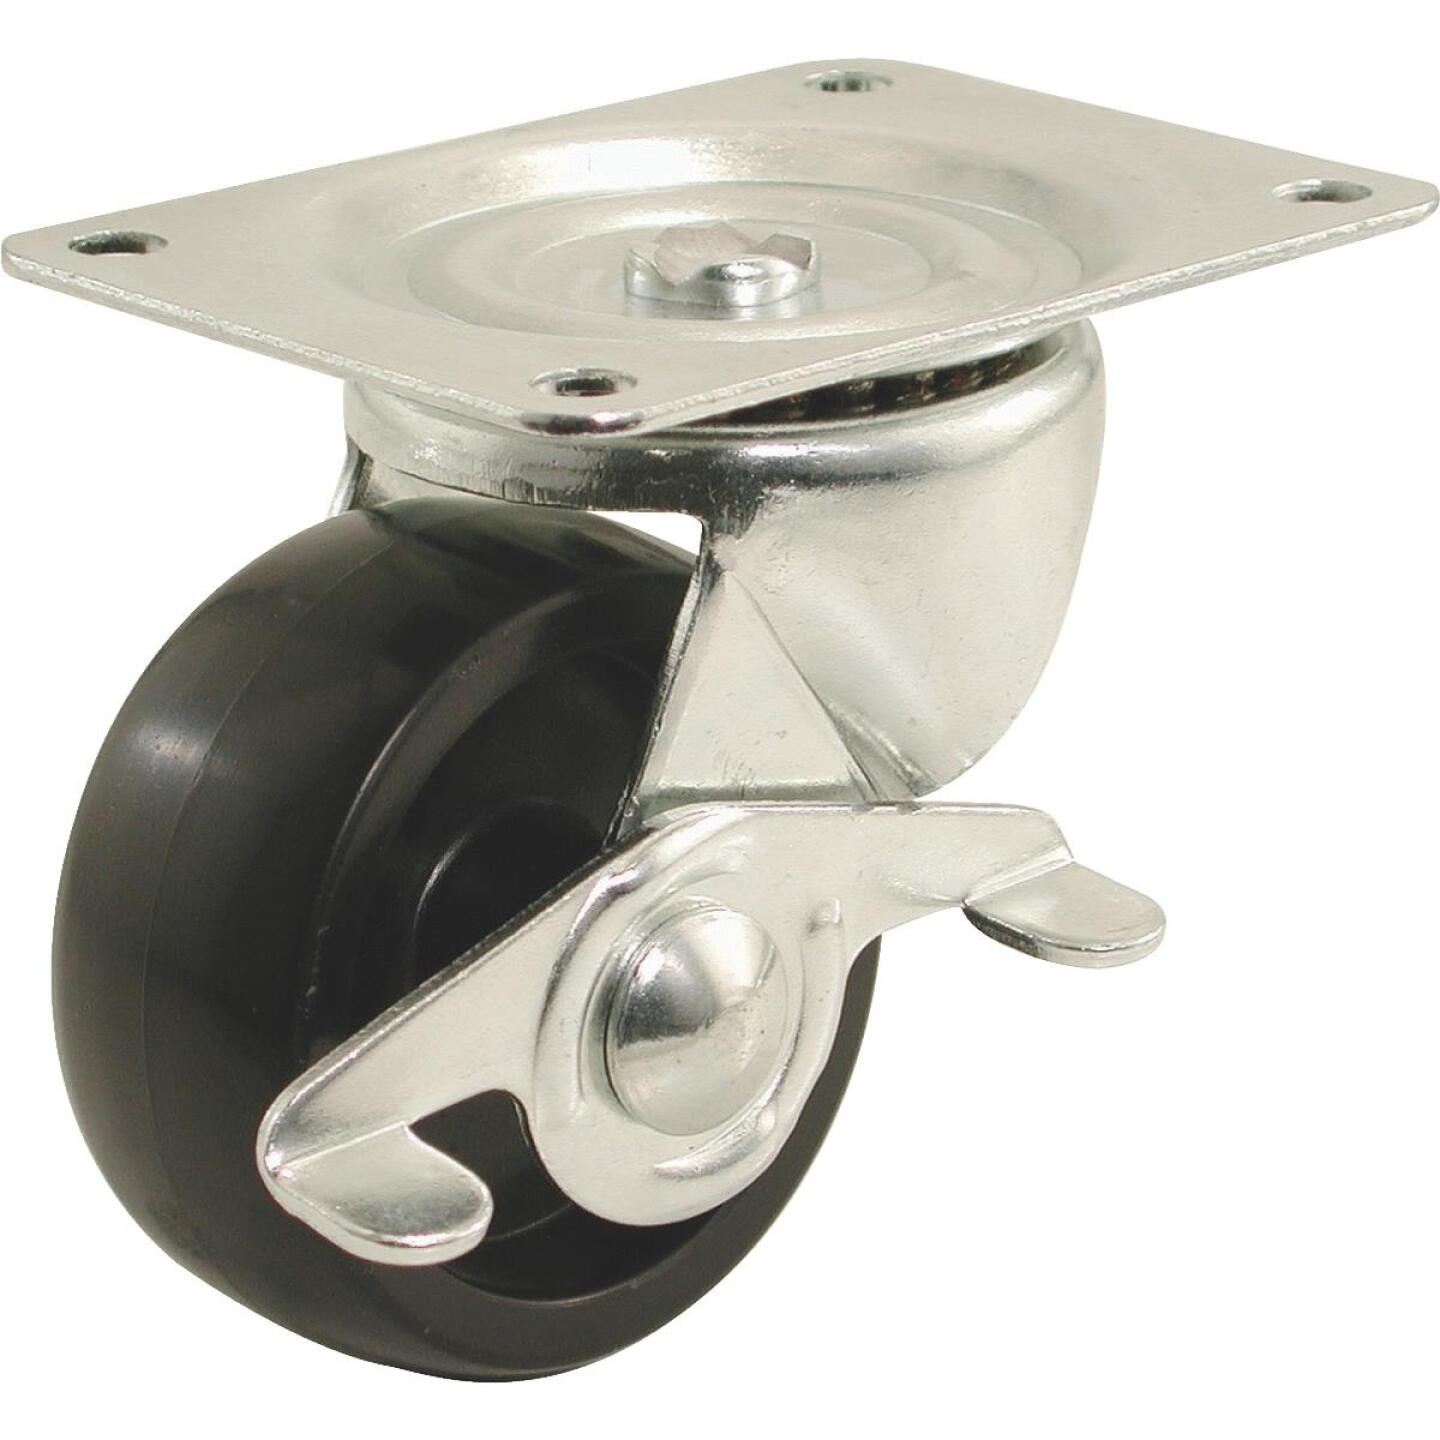 Shepherd 2 In. General-Duty Polypropylene Swivel Plate Caster with Brake Image 1